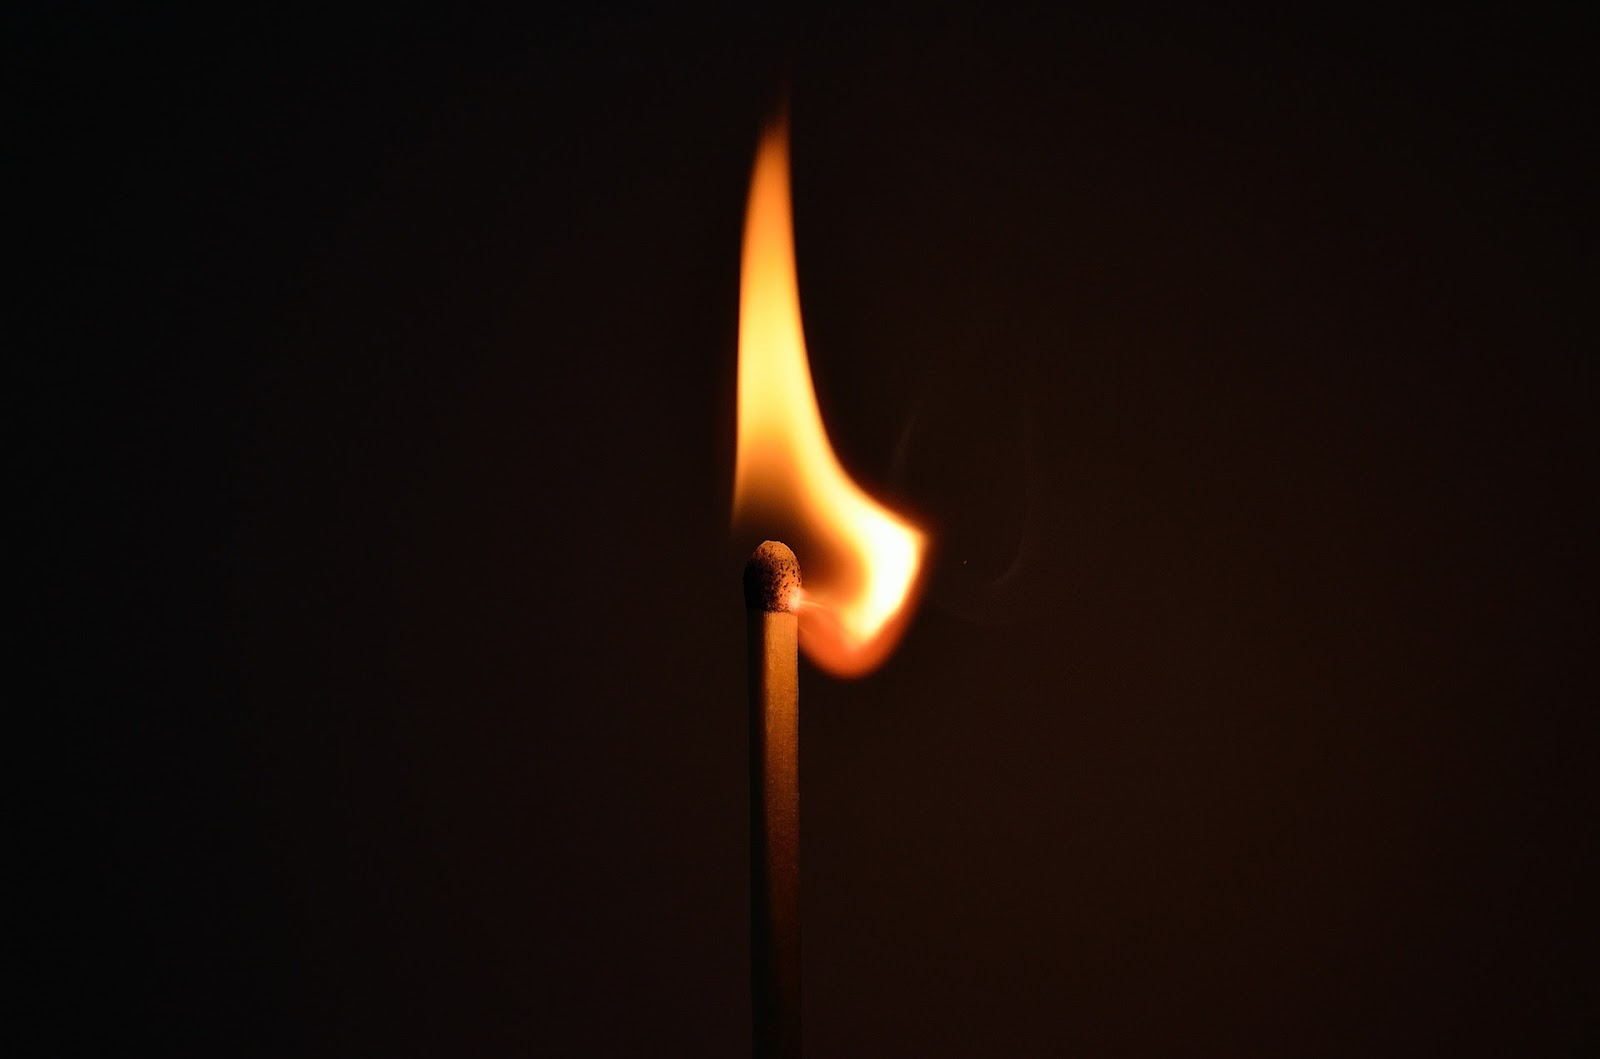 matchstick-fire-light-striking-66267.jpeg